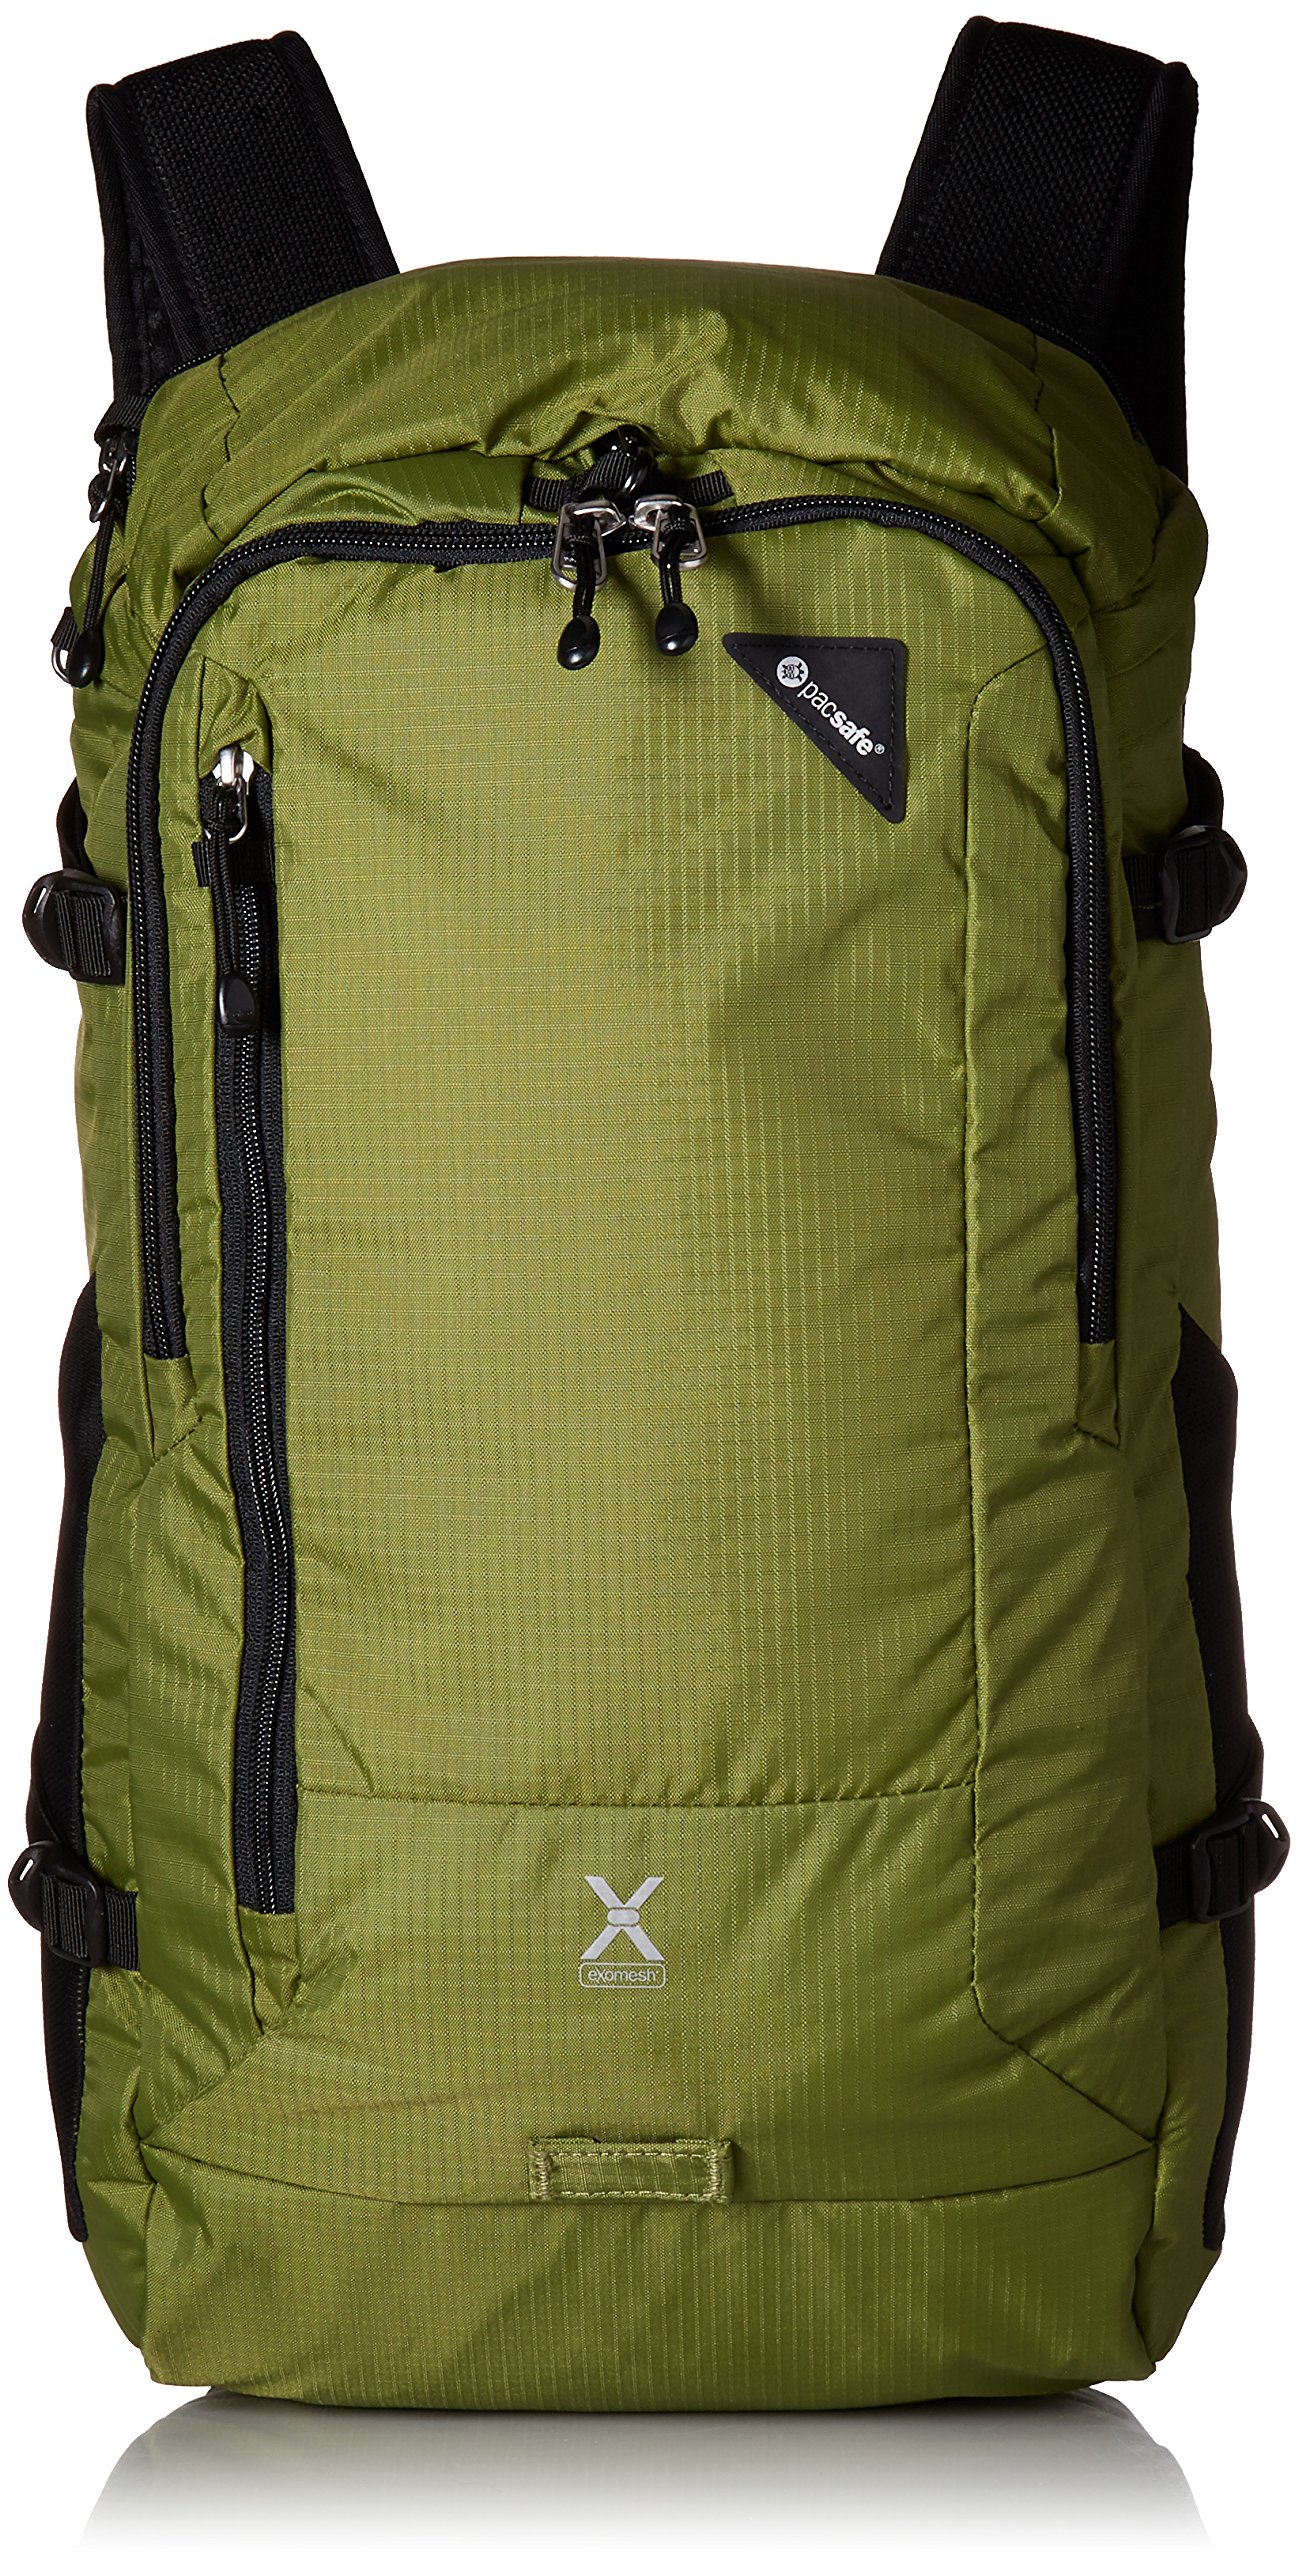 Pacsafe Venturesafe X30 Anti-Theft Adventure Backpack (Olive Green)